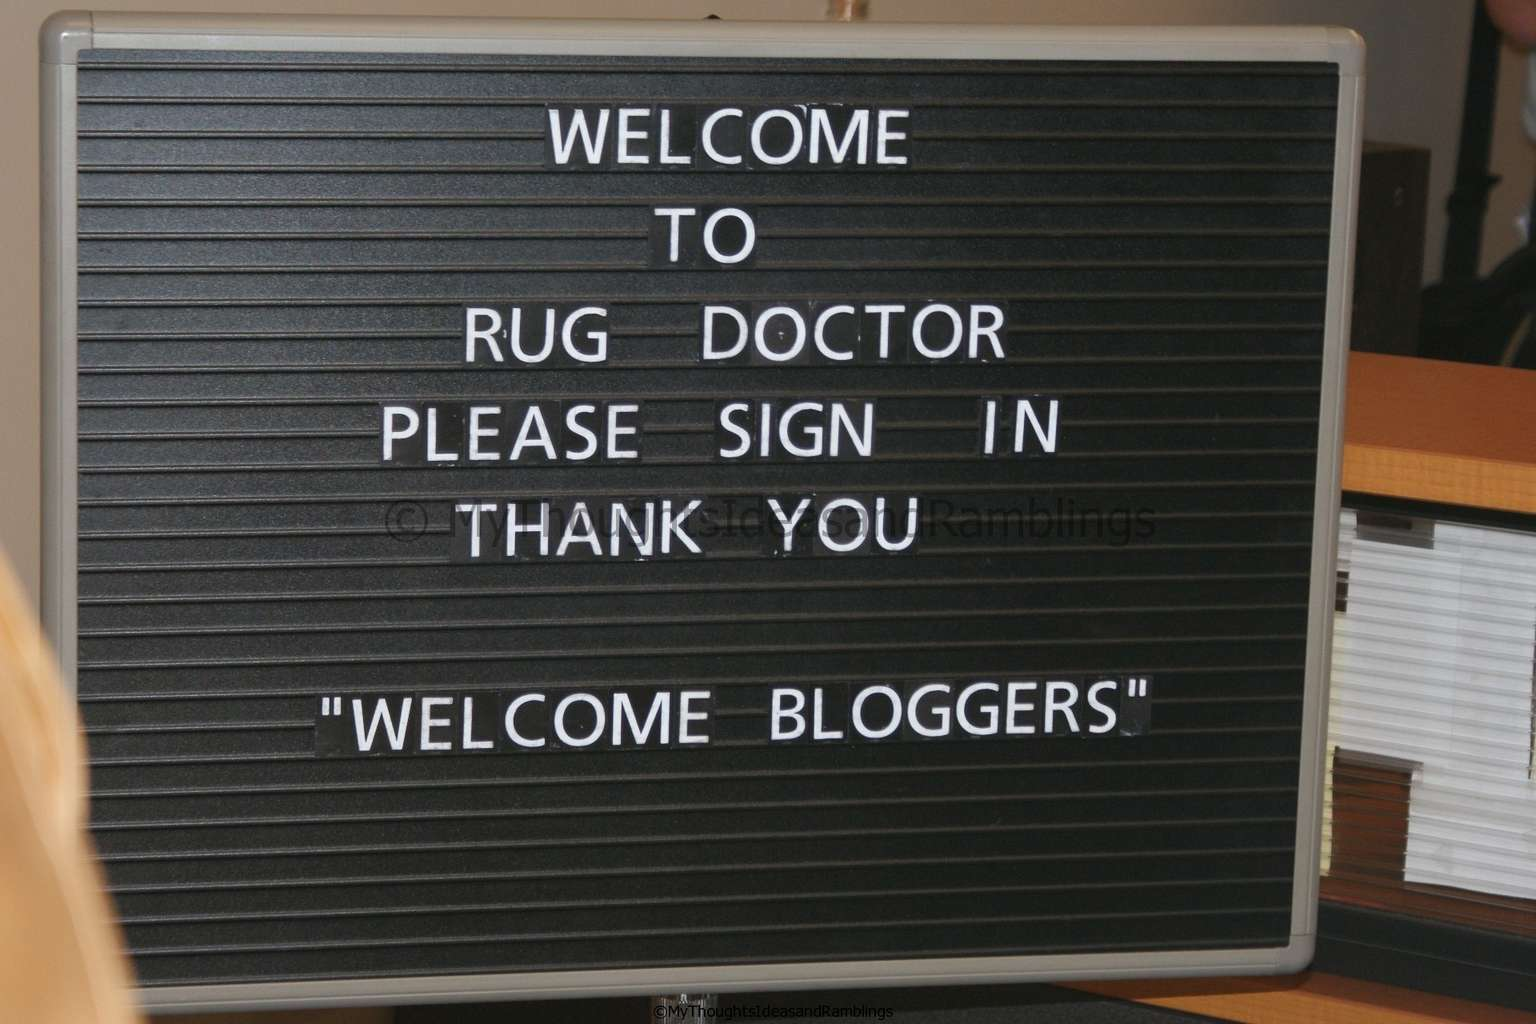 My Visit To Rug Doctor